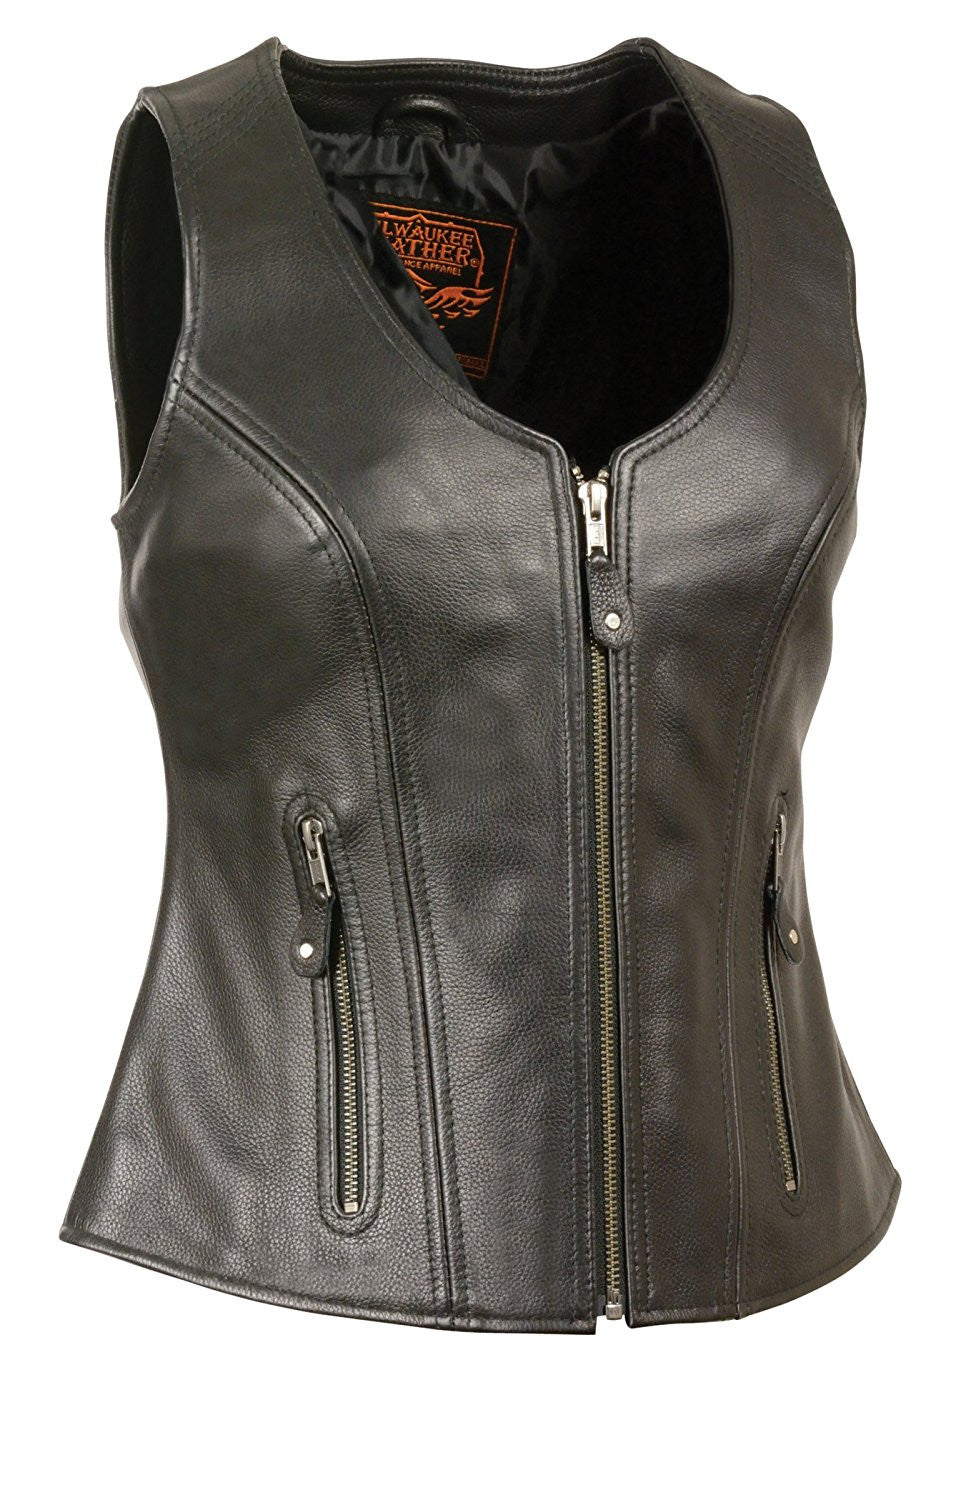 Milwaukee Women's Zipper Vest with Stitch Detailing